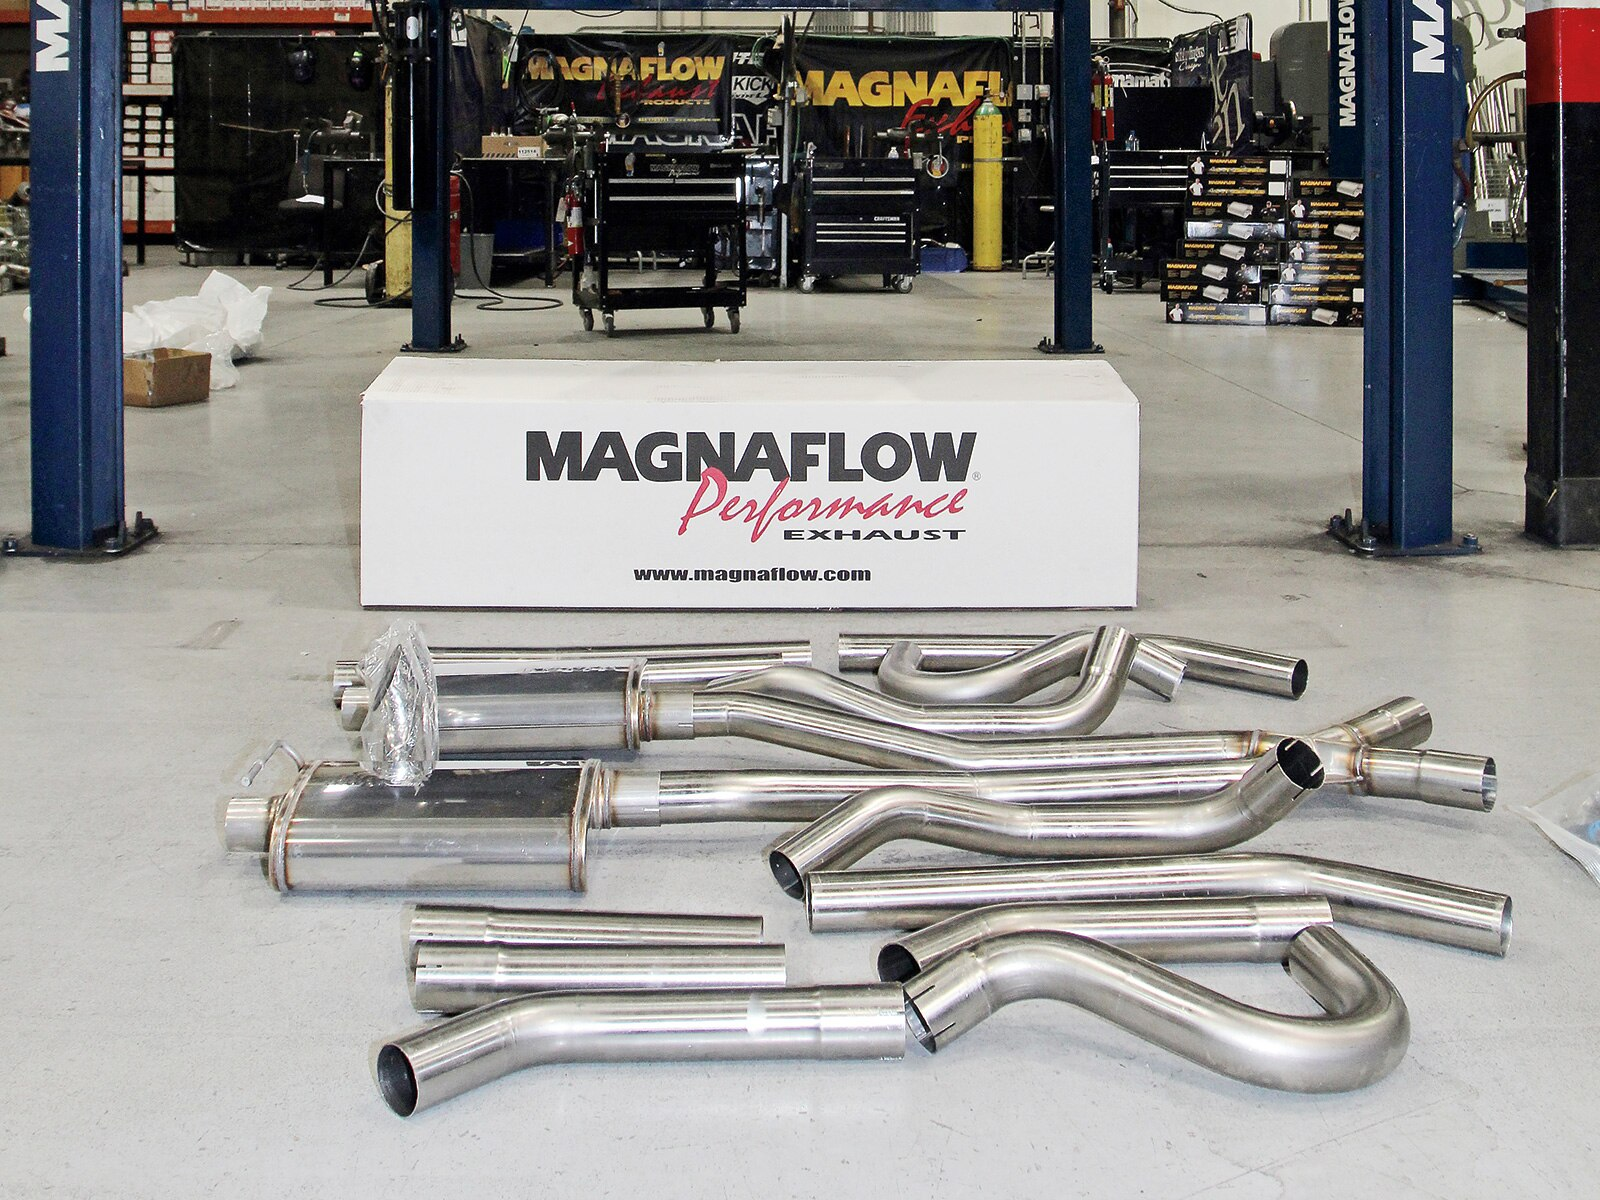 magnaflow-exhaust-install-magnaflow-performance-exhaust-kit-promo